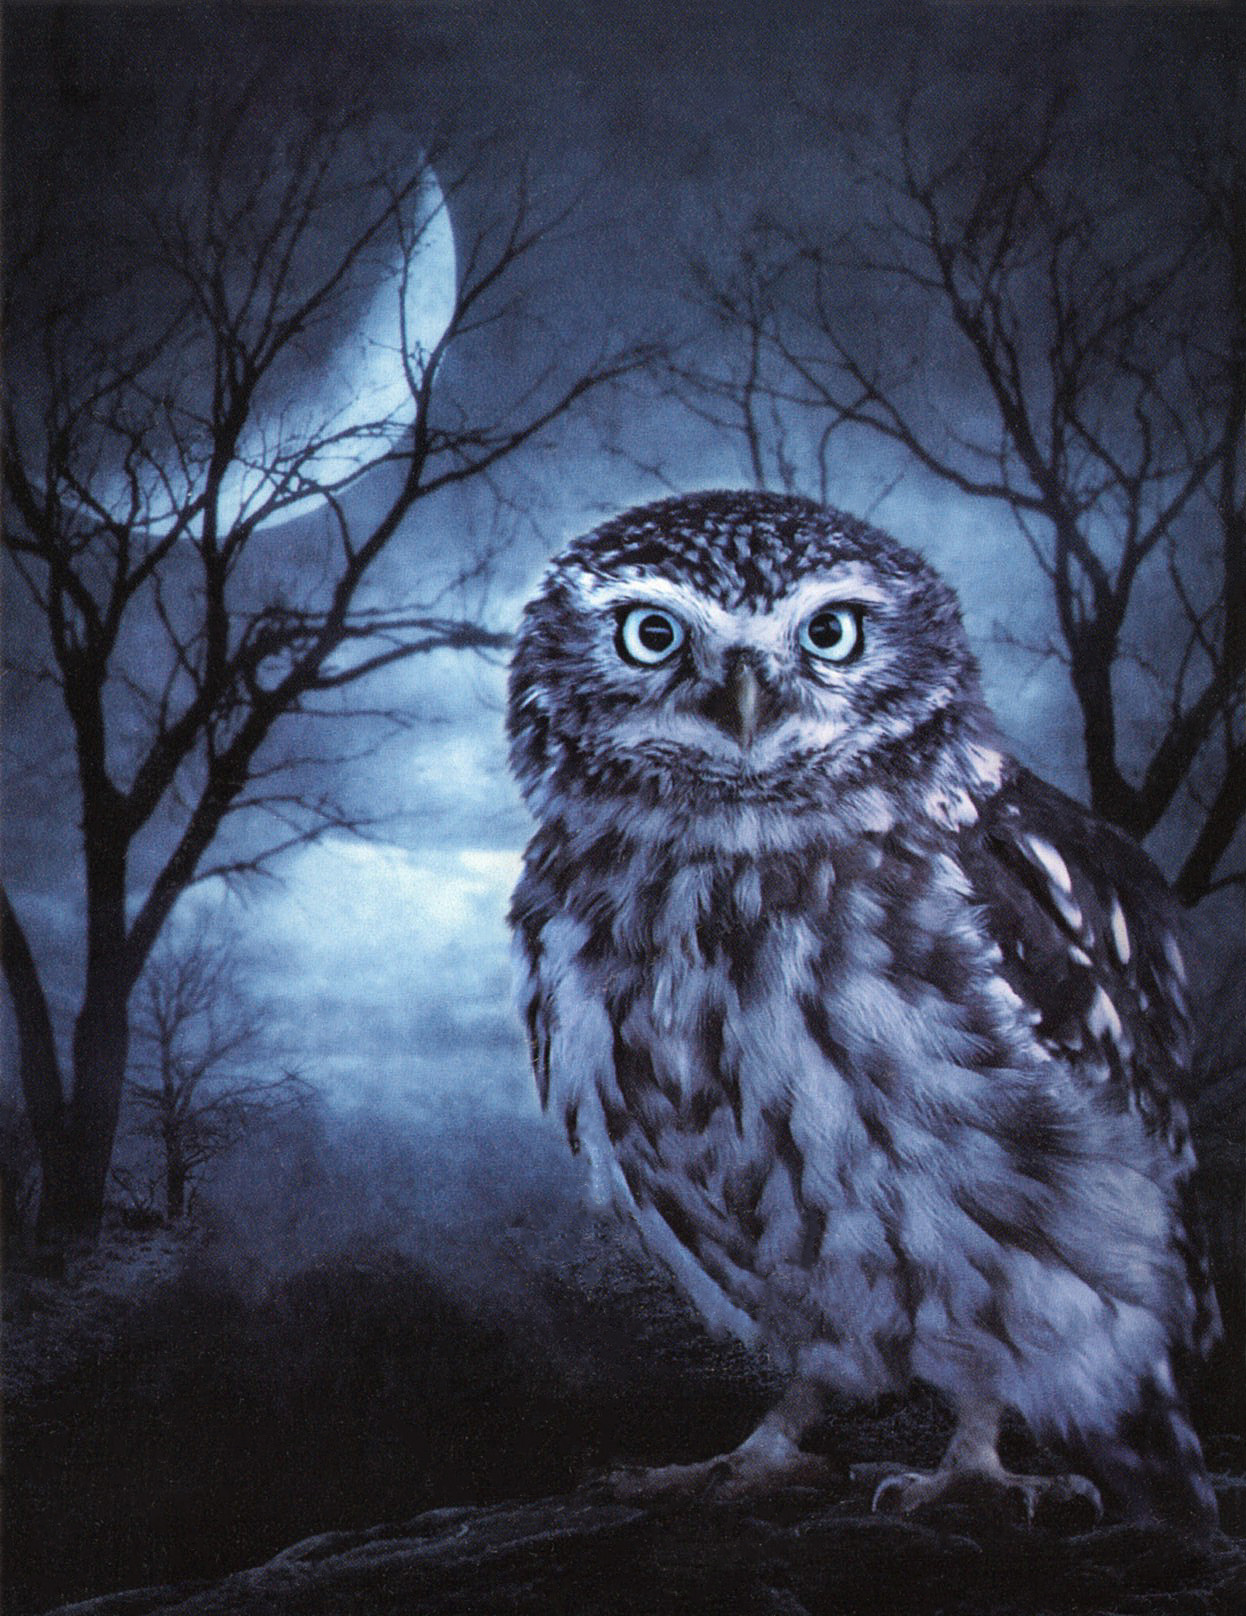 The Owl of Indigo